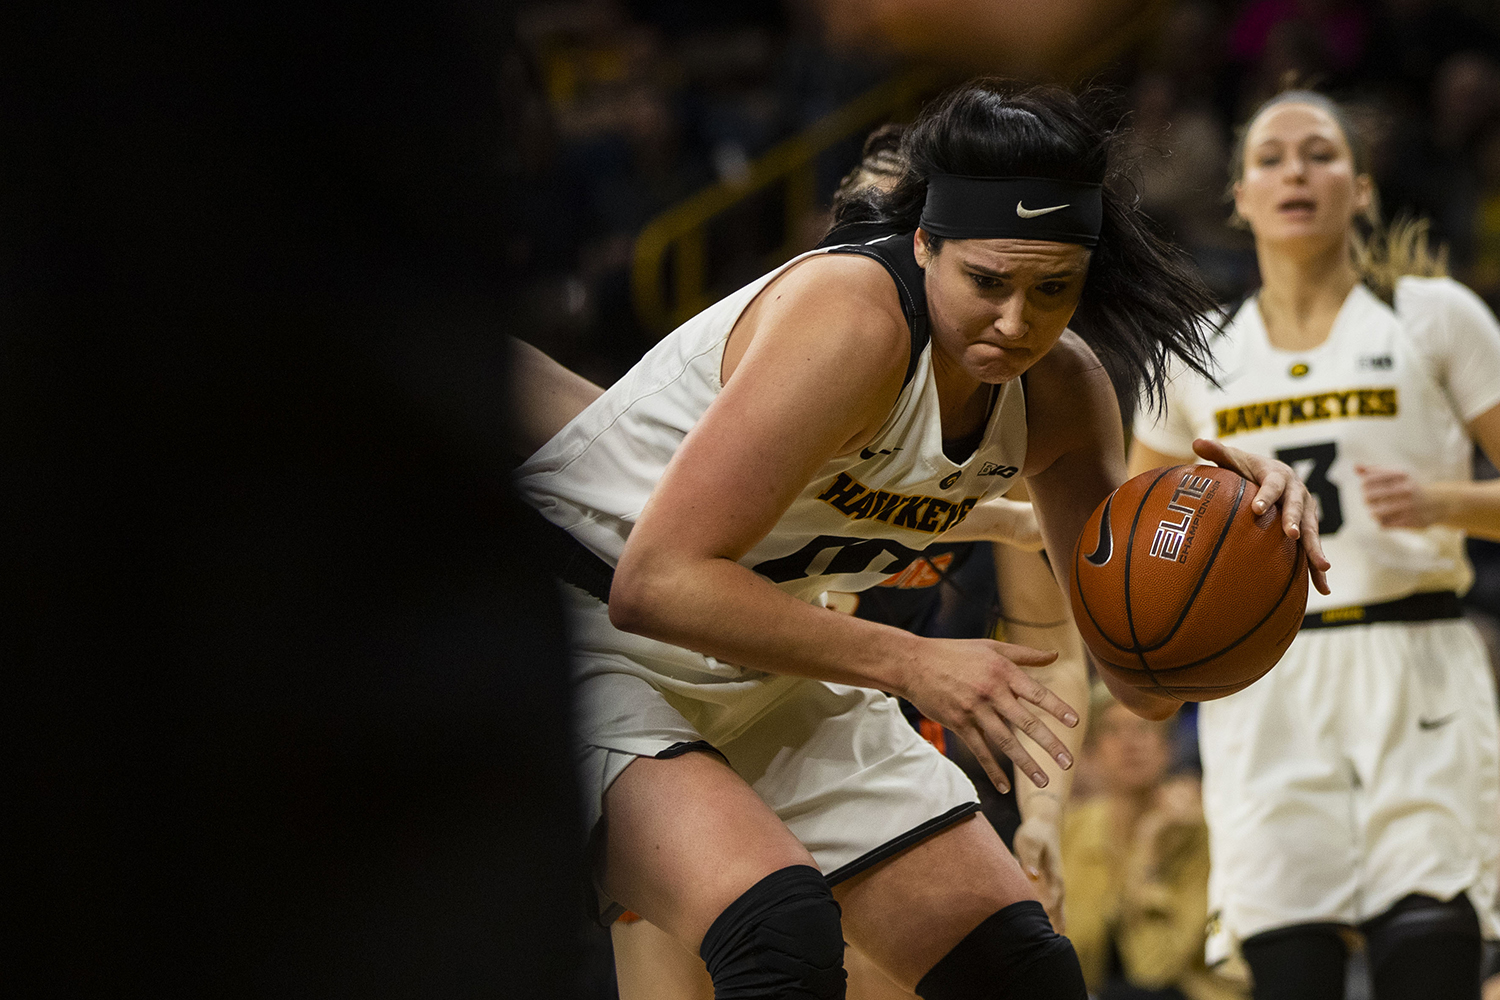 Iowa+center+Megan+Gustafson+drives+to+the+basket+during+the+Iowa%2FIllinois+women%27s+basketball+game+at+Carver-Hawkeye+Arena+on+Thursday%2C+February+14%2C+2019.+The+Hawkeyes+defeated+the+Fighting+Illini%2C+88-66.+